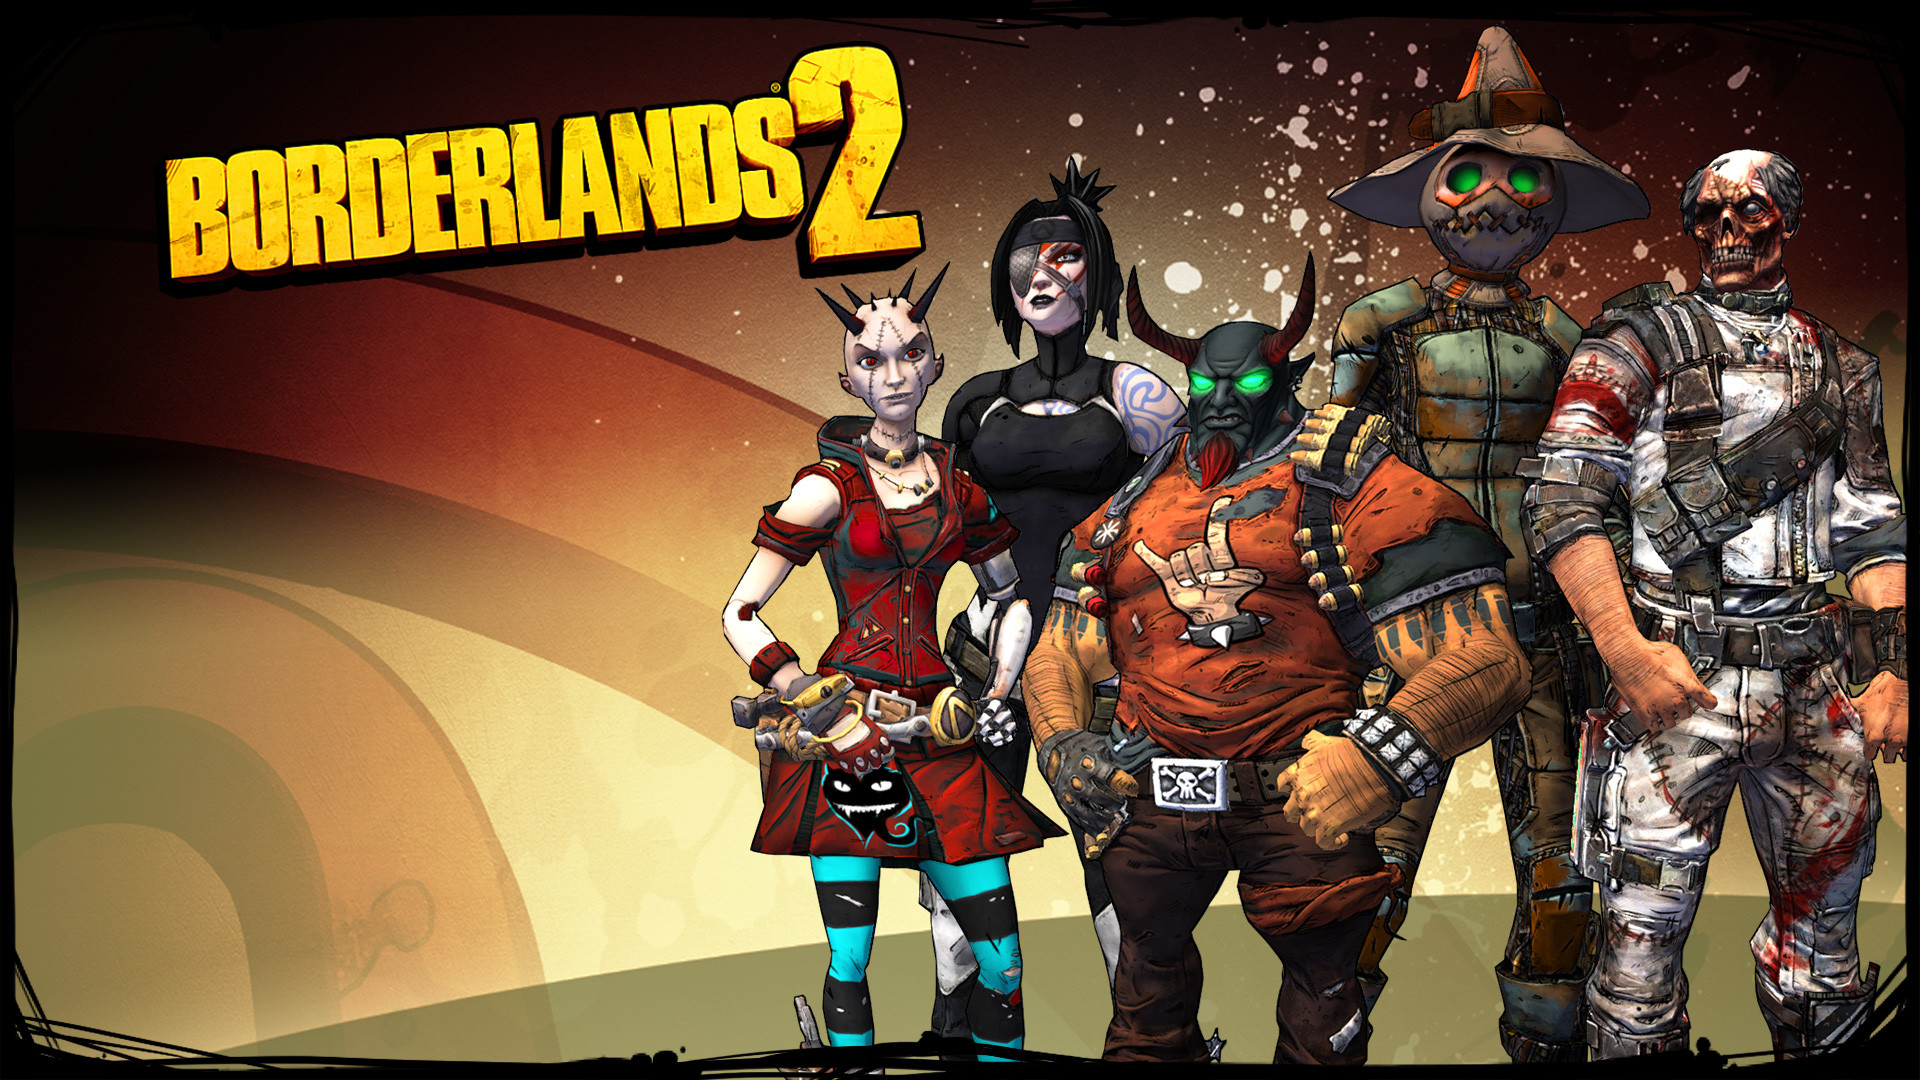 Borderlands Wallpaper Jpg: Borderlands Wallpaper (75+ Images